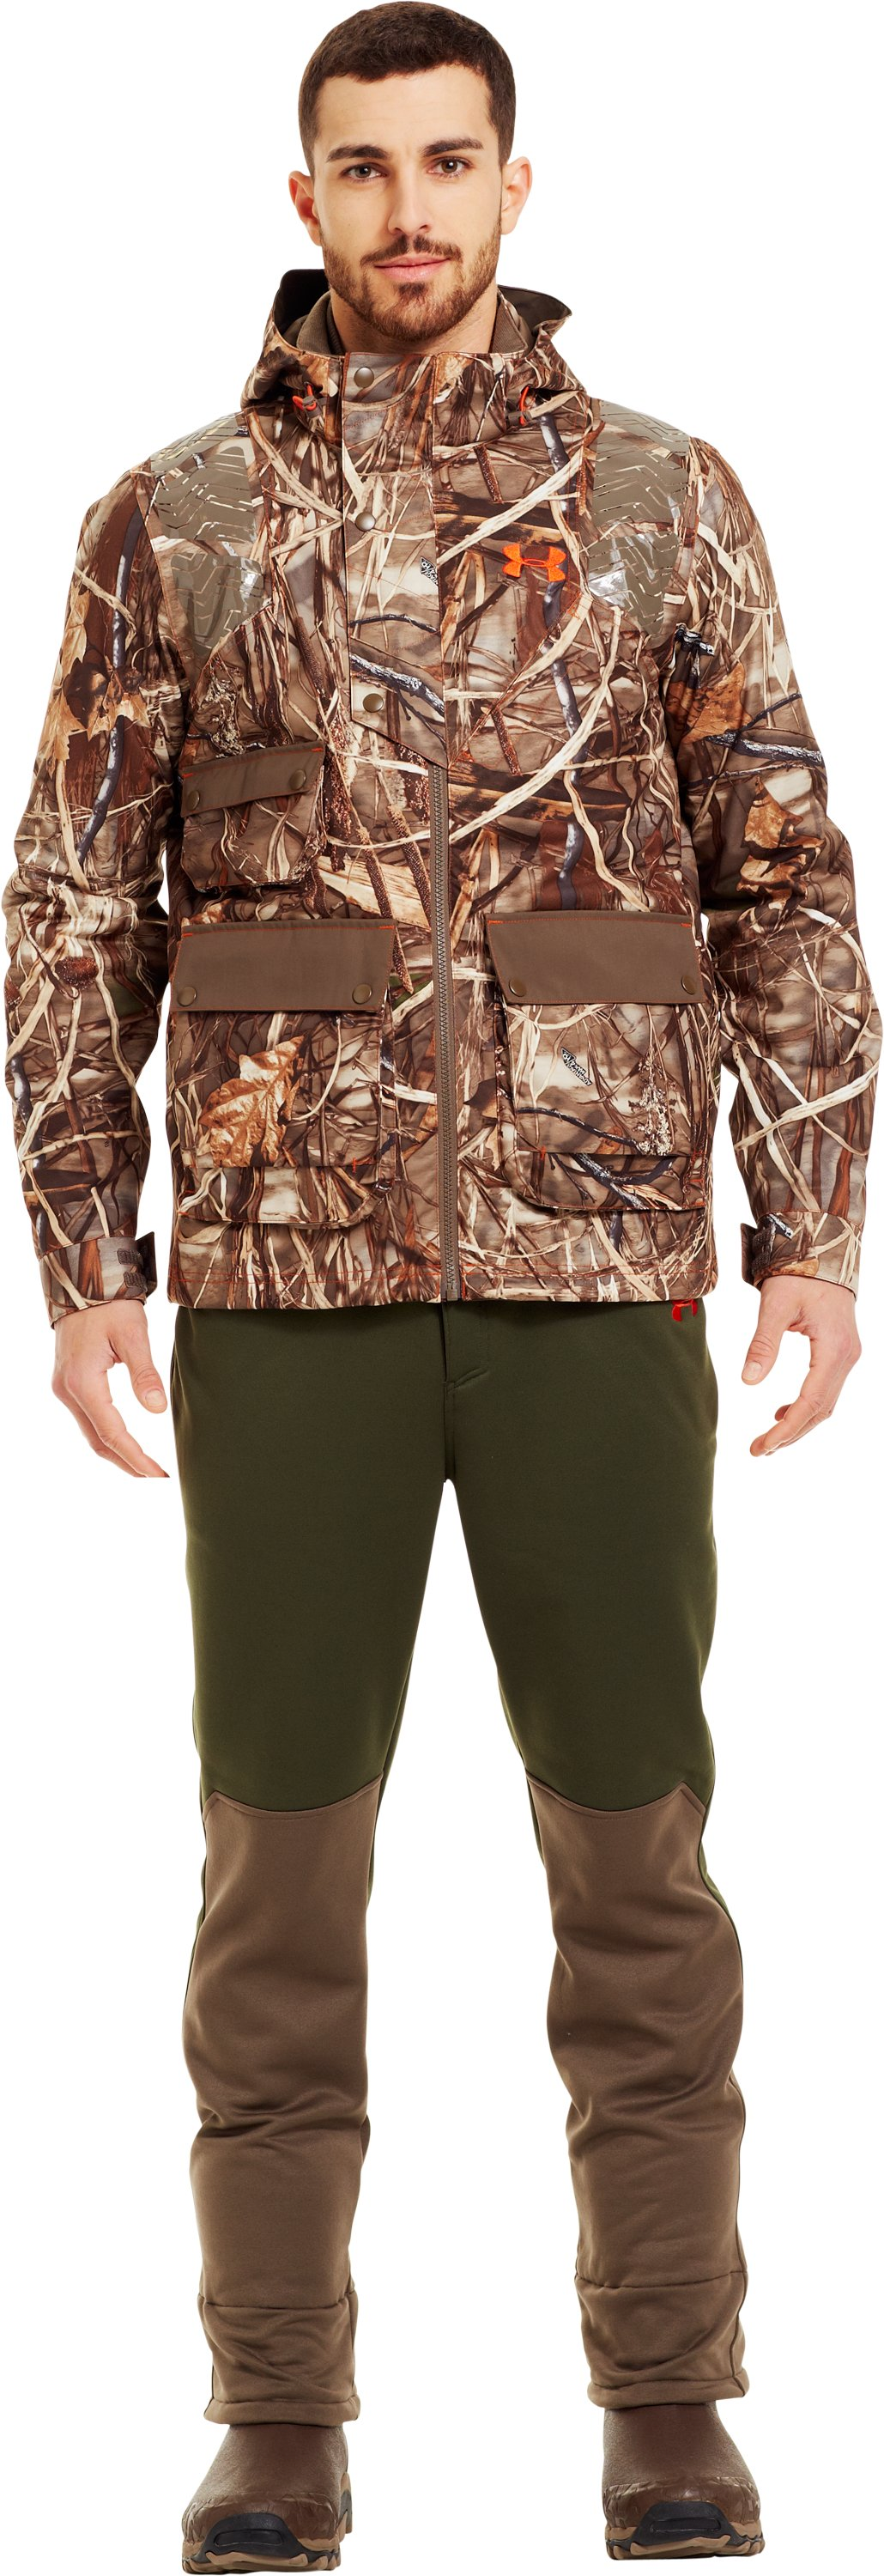 Men's UA Skysweeper Systems 3-in-1 Jacket, Realtree Max, Front